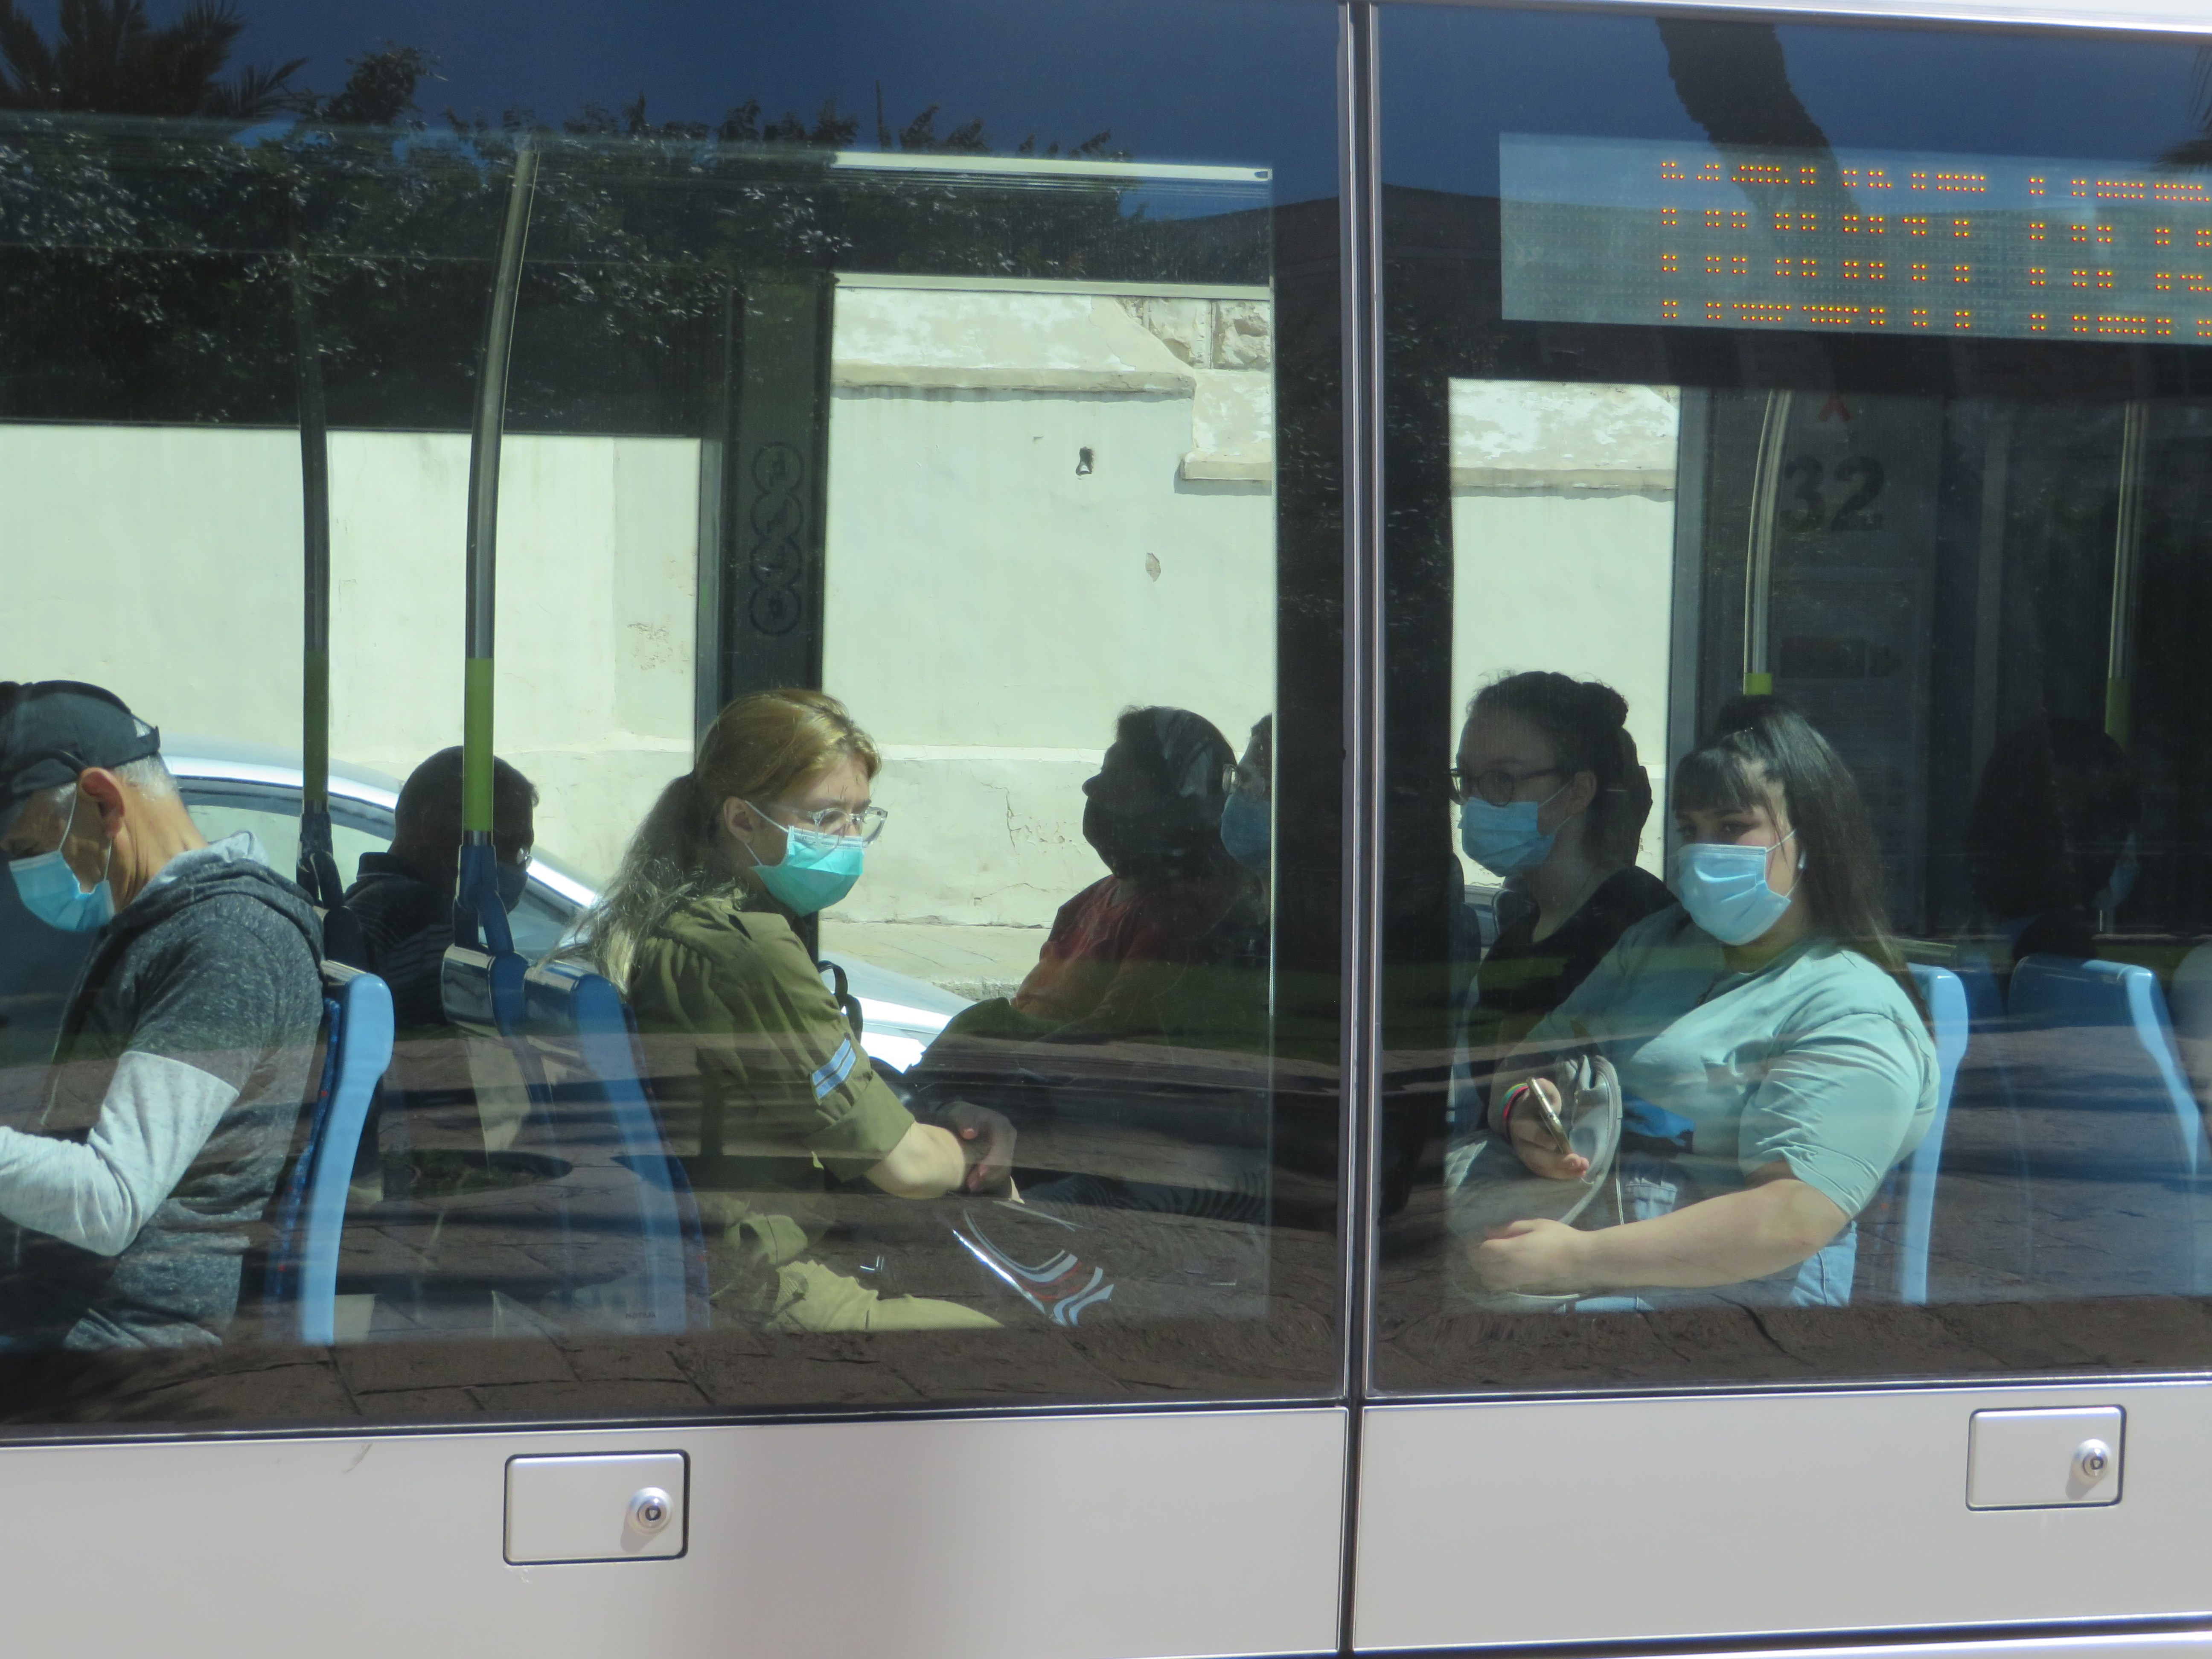 Jerusalem's lite rail line and all public transportation require that masks be worn for the safety of all.